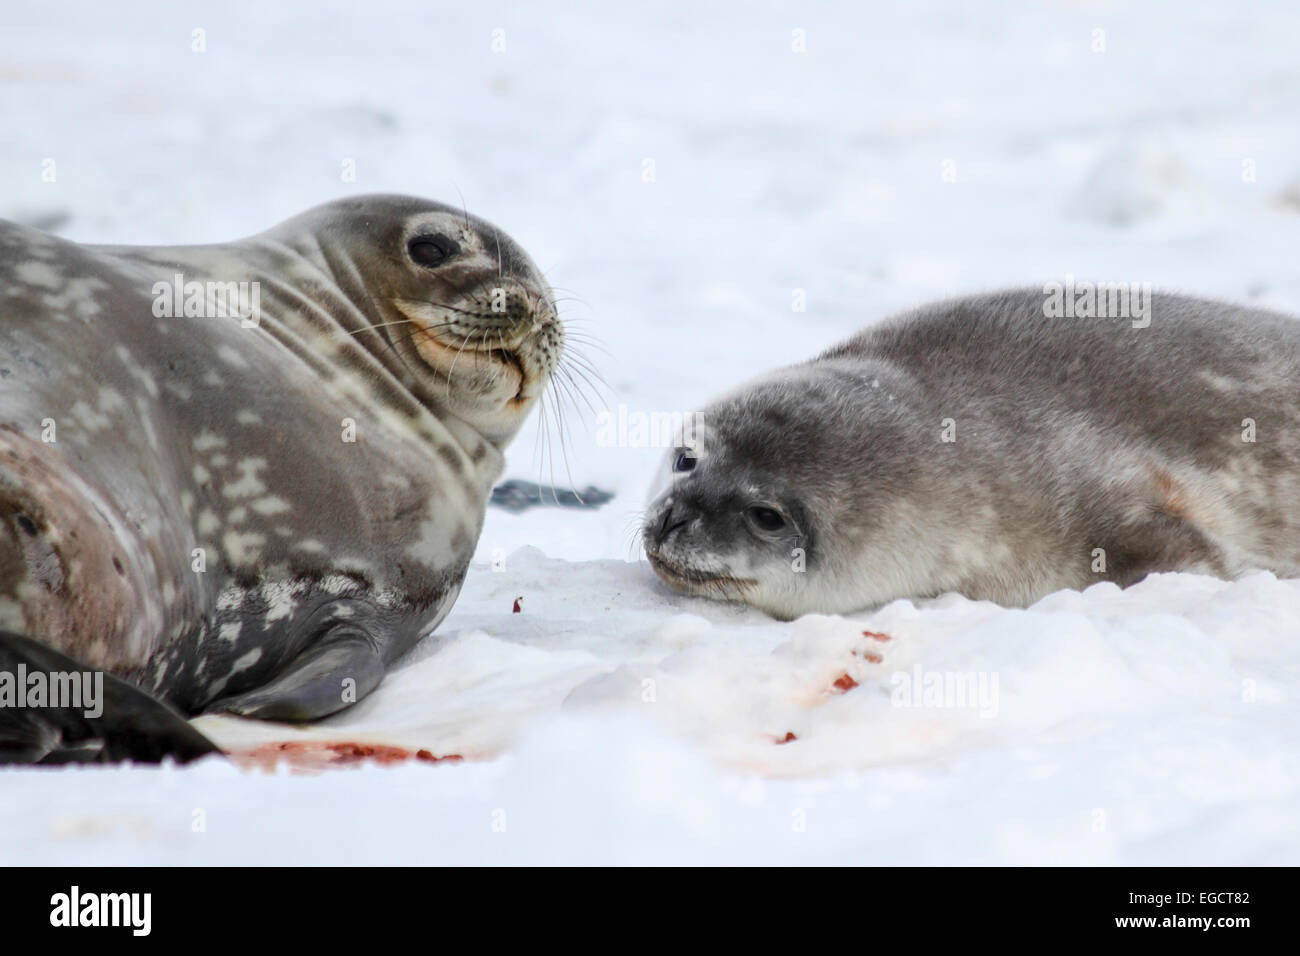 Weddell seals (Leptonychotes weddellii). Mother and pup lying on sea ice. Weddell seals are born singly. They have - Stock Image